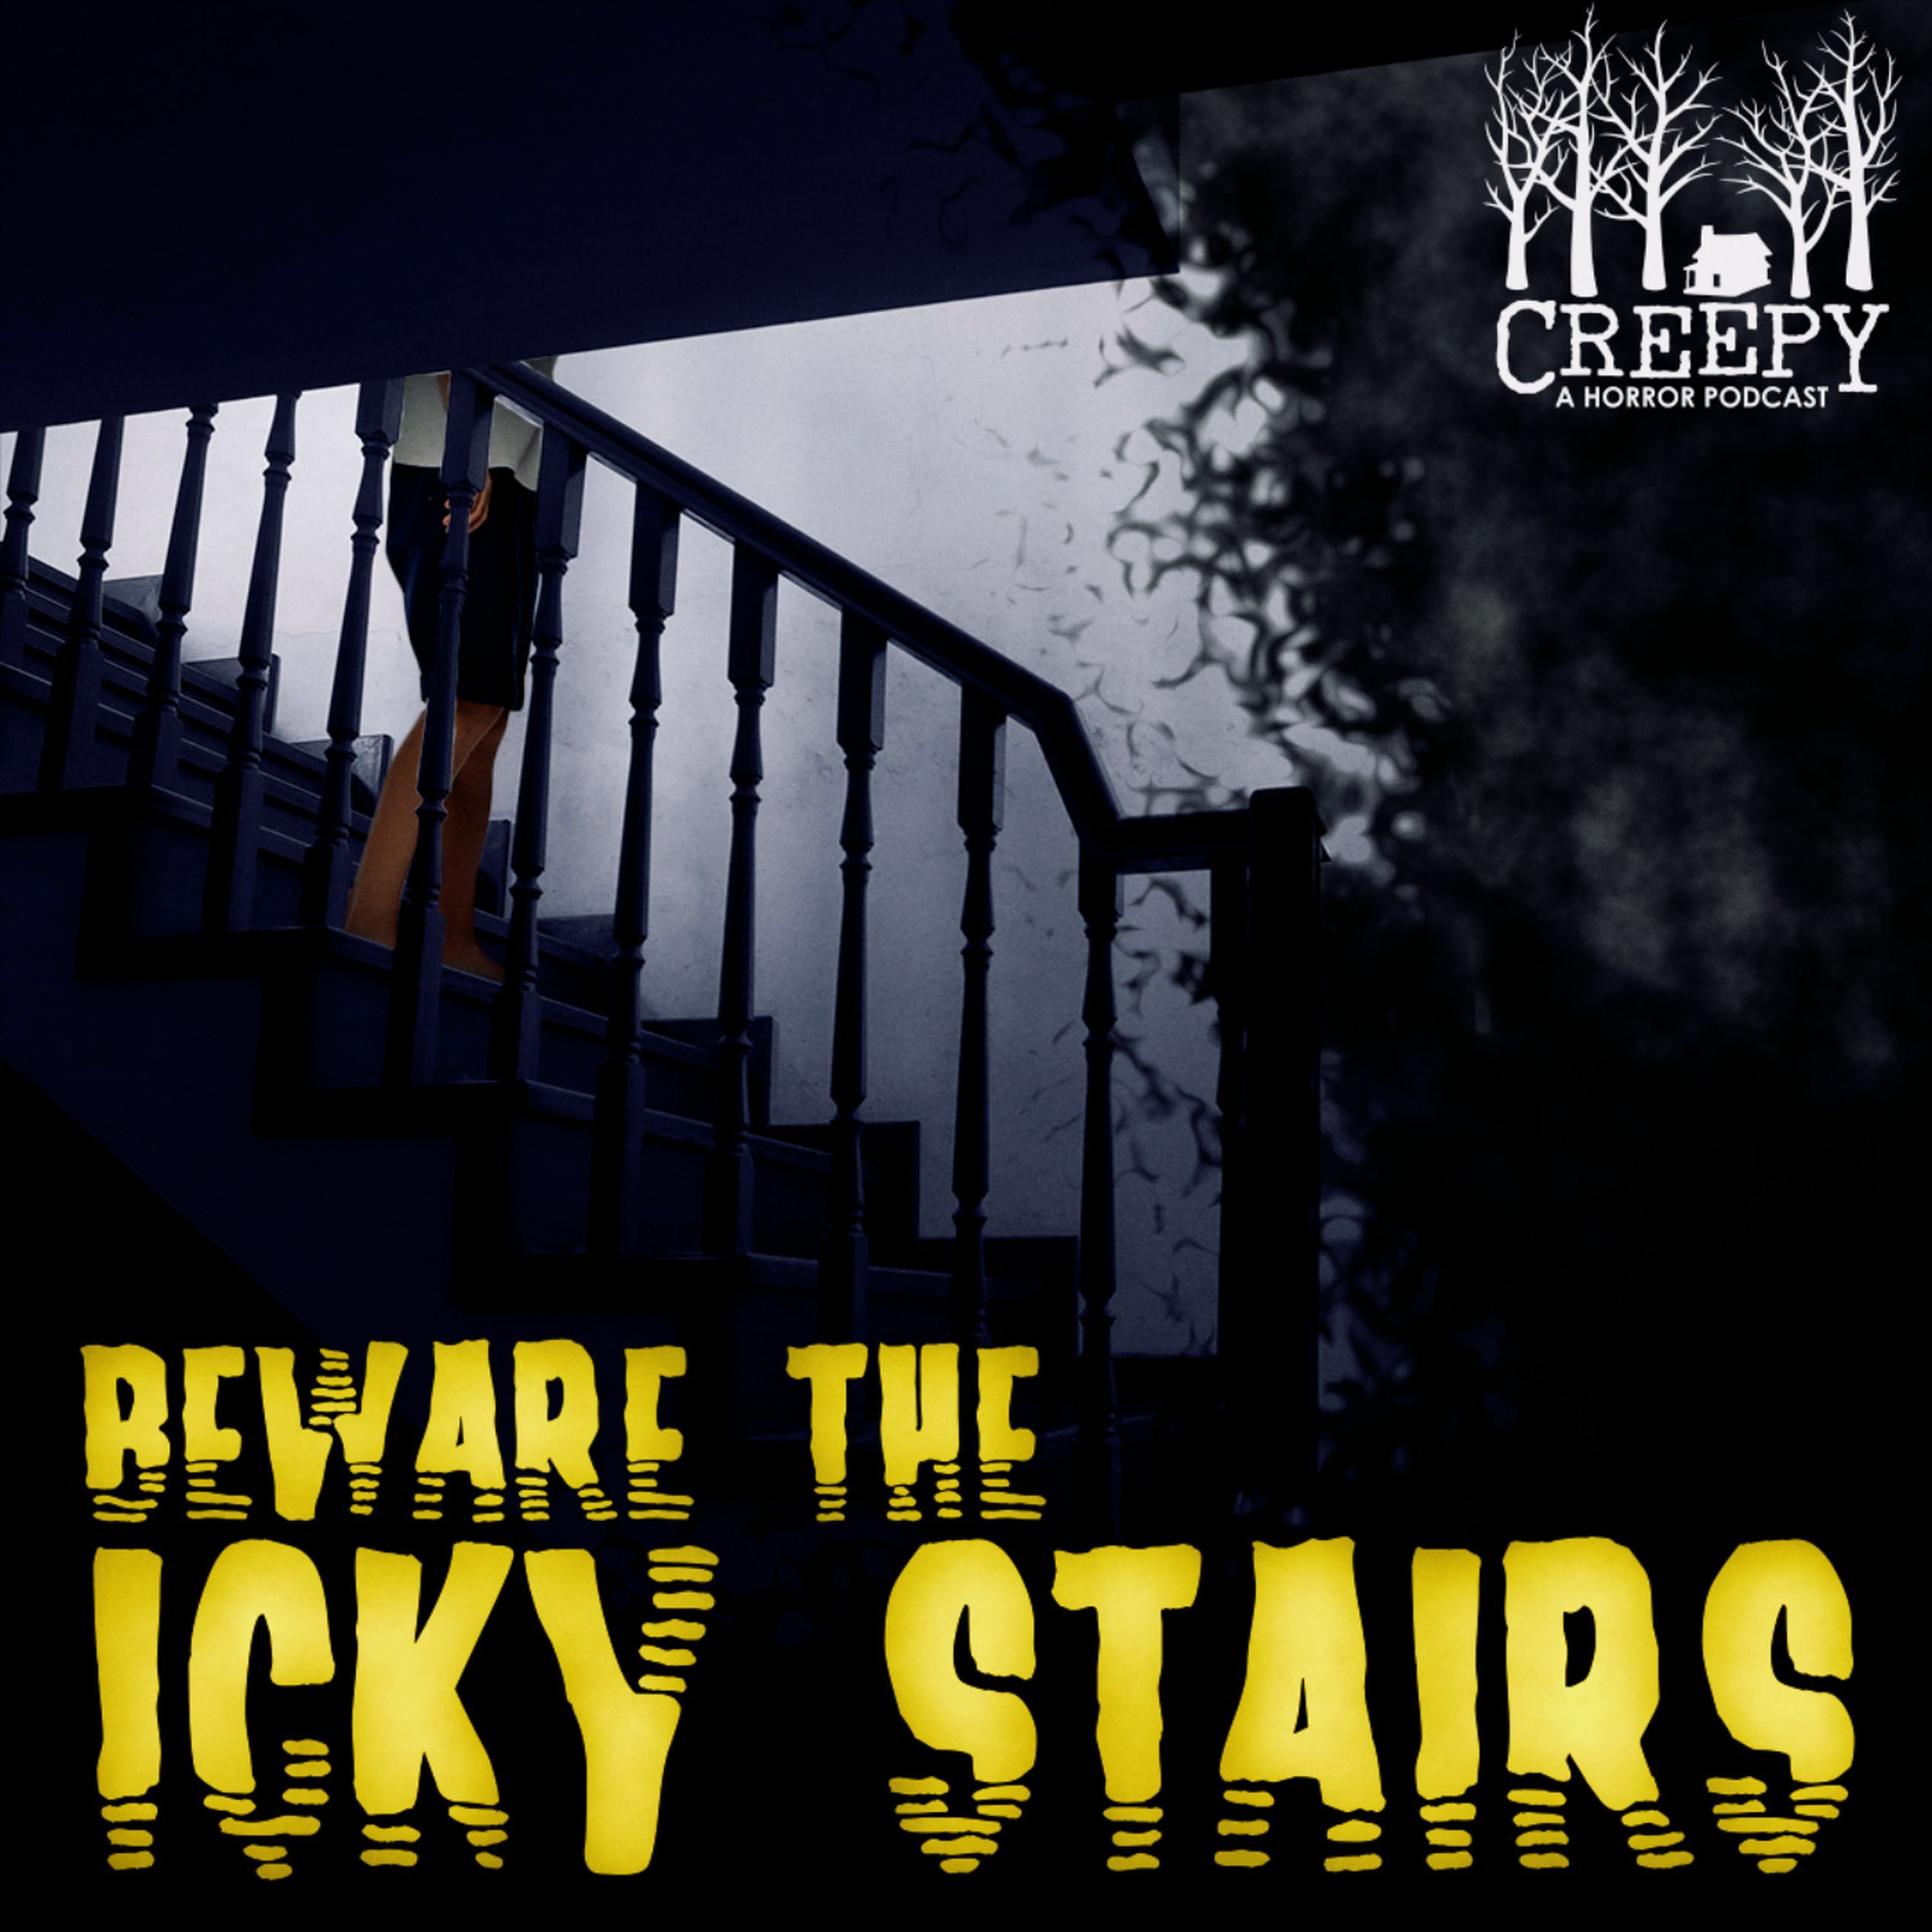 Beware the Icky Stairs